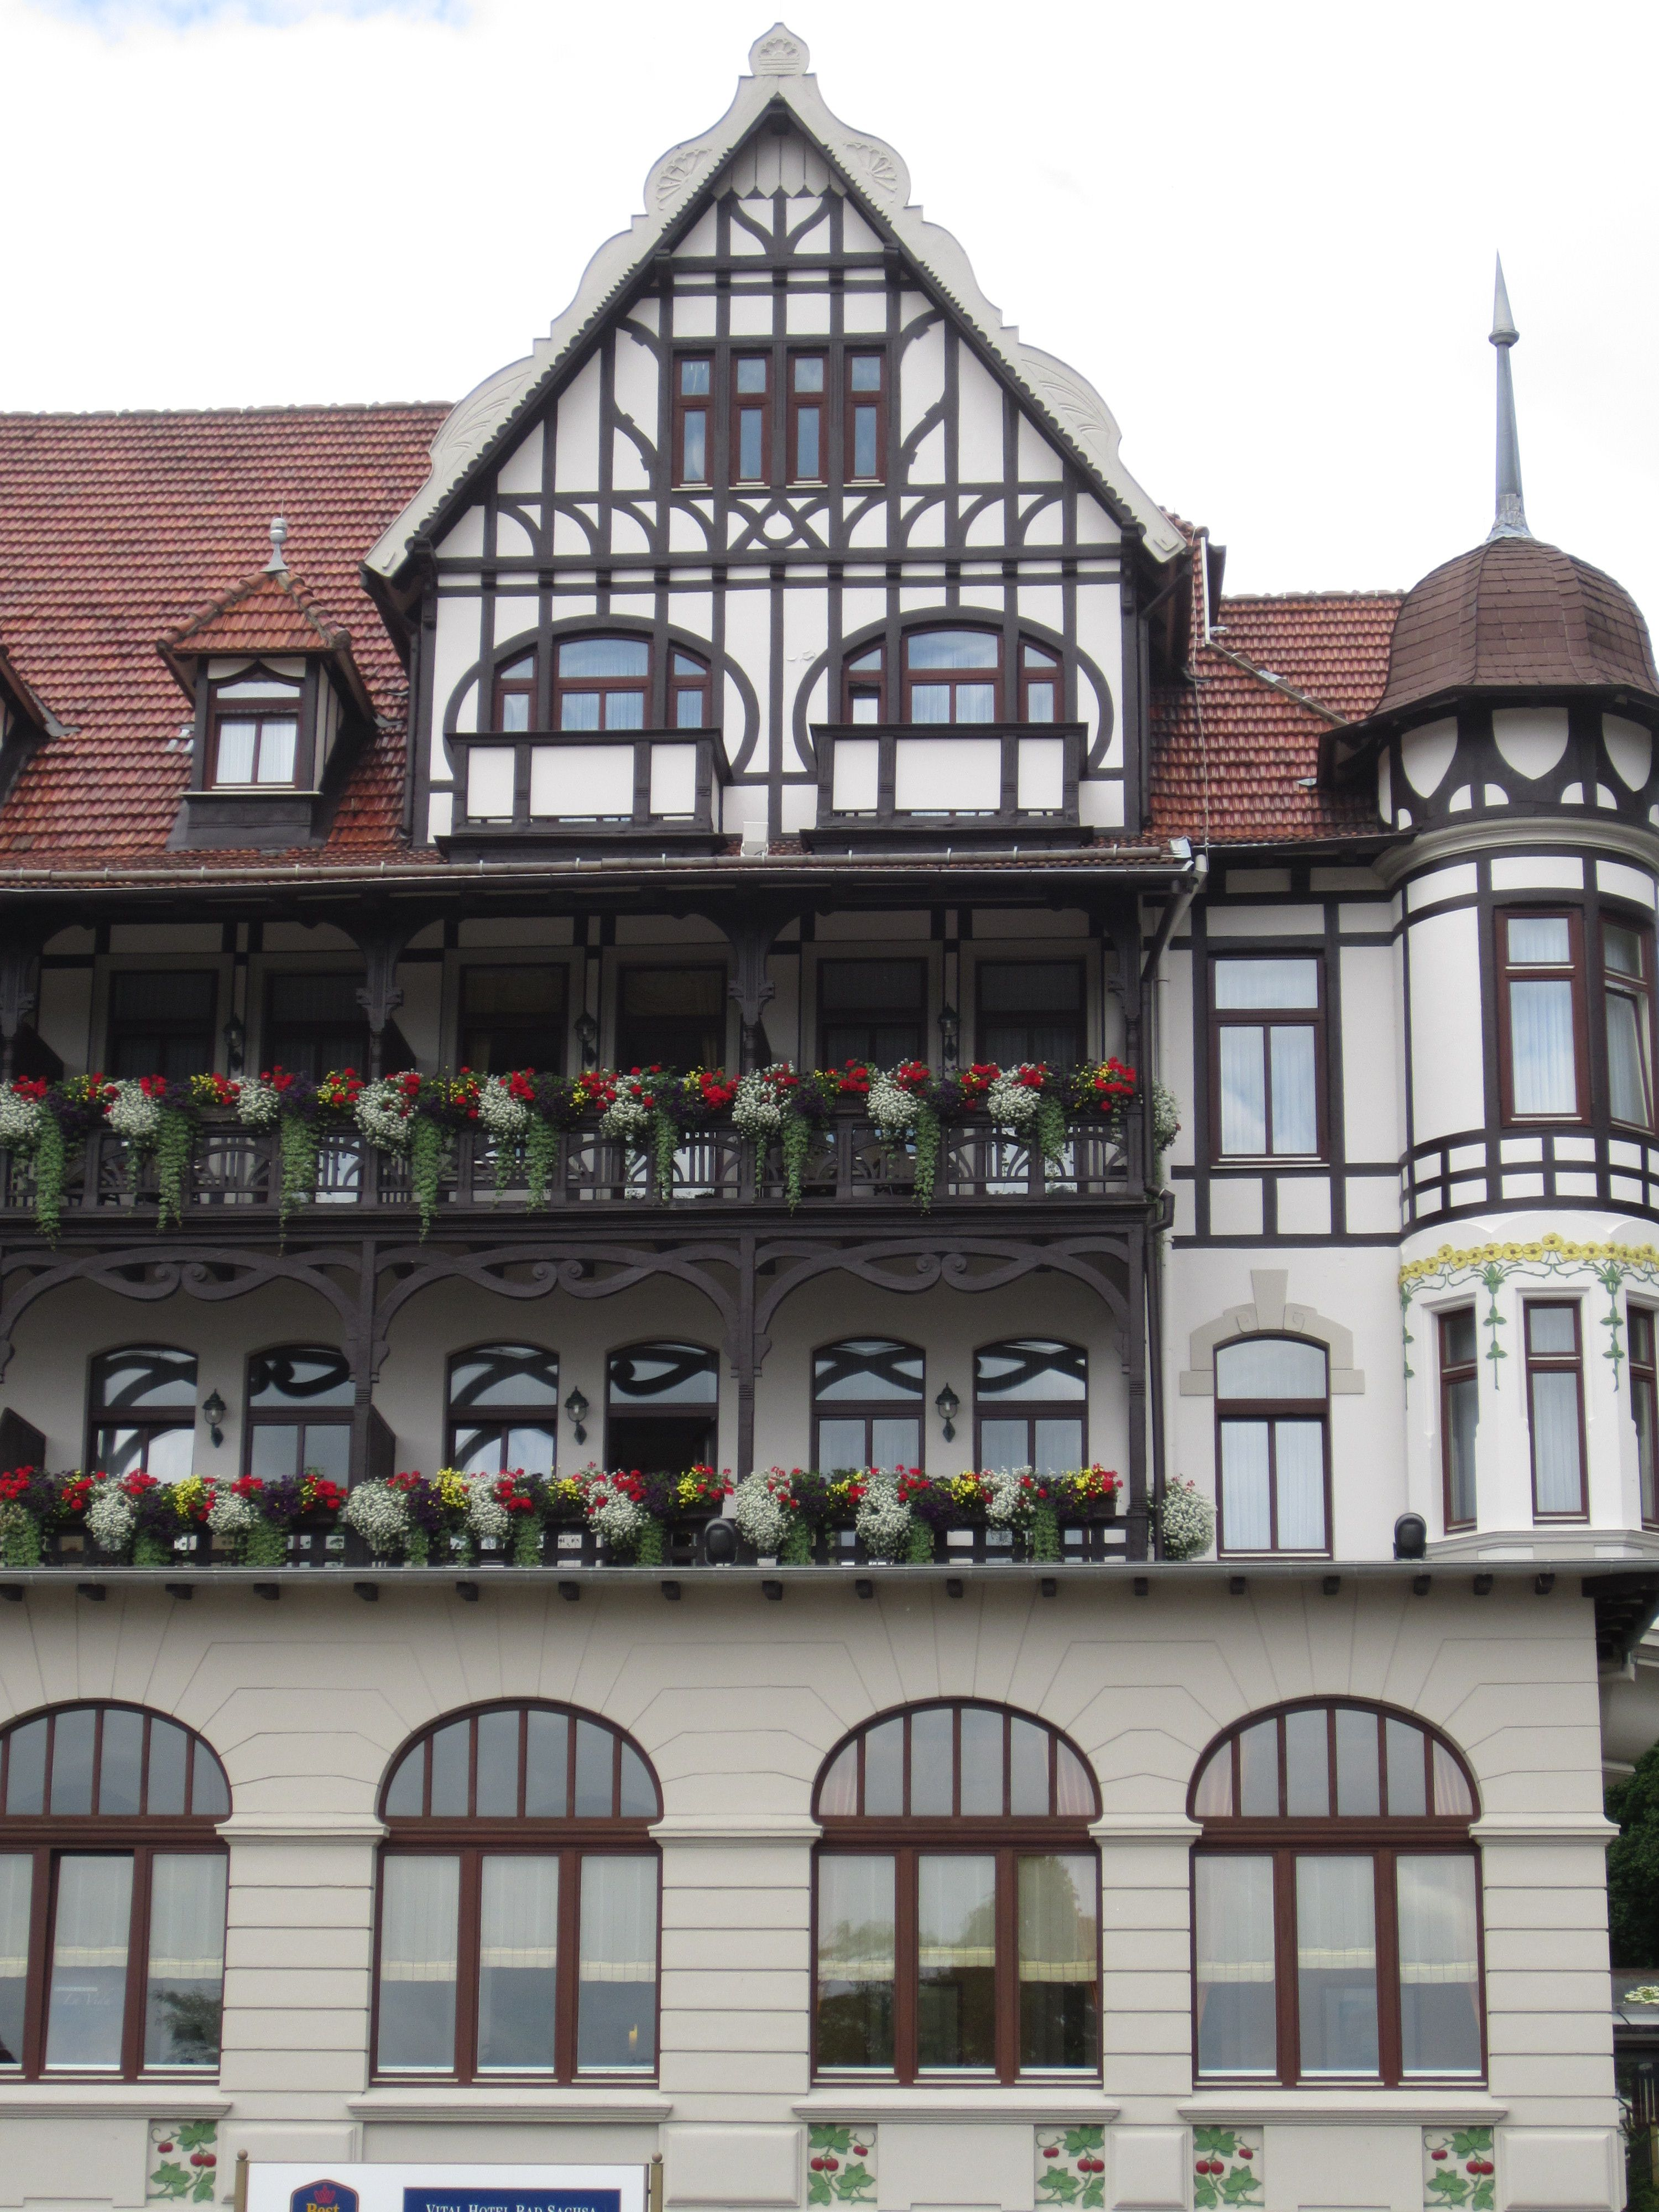 Image result for german balcony German architecture